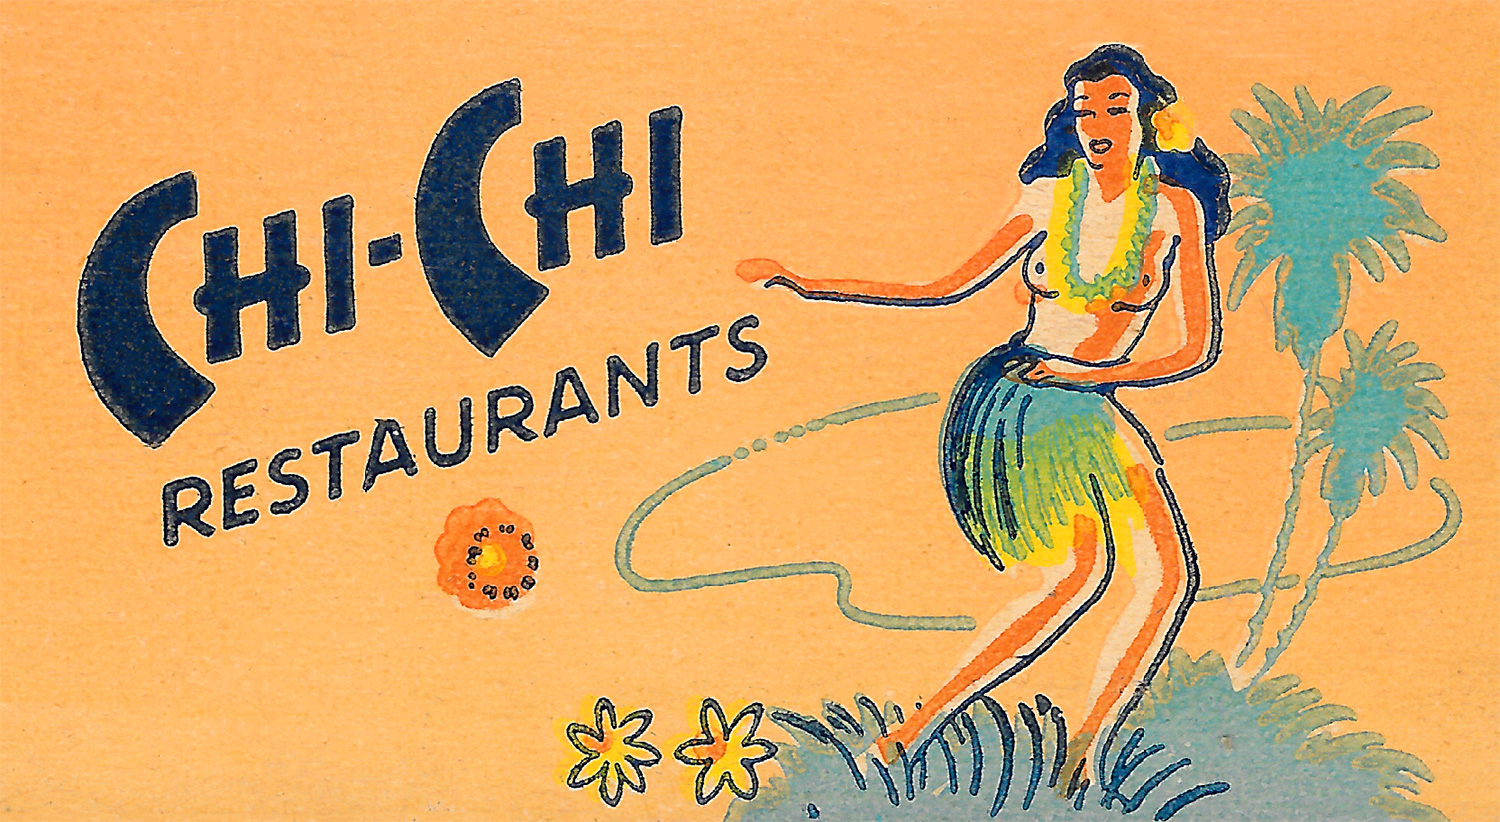 Chi-Chi Restaurants match cover art